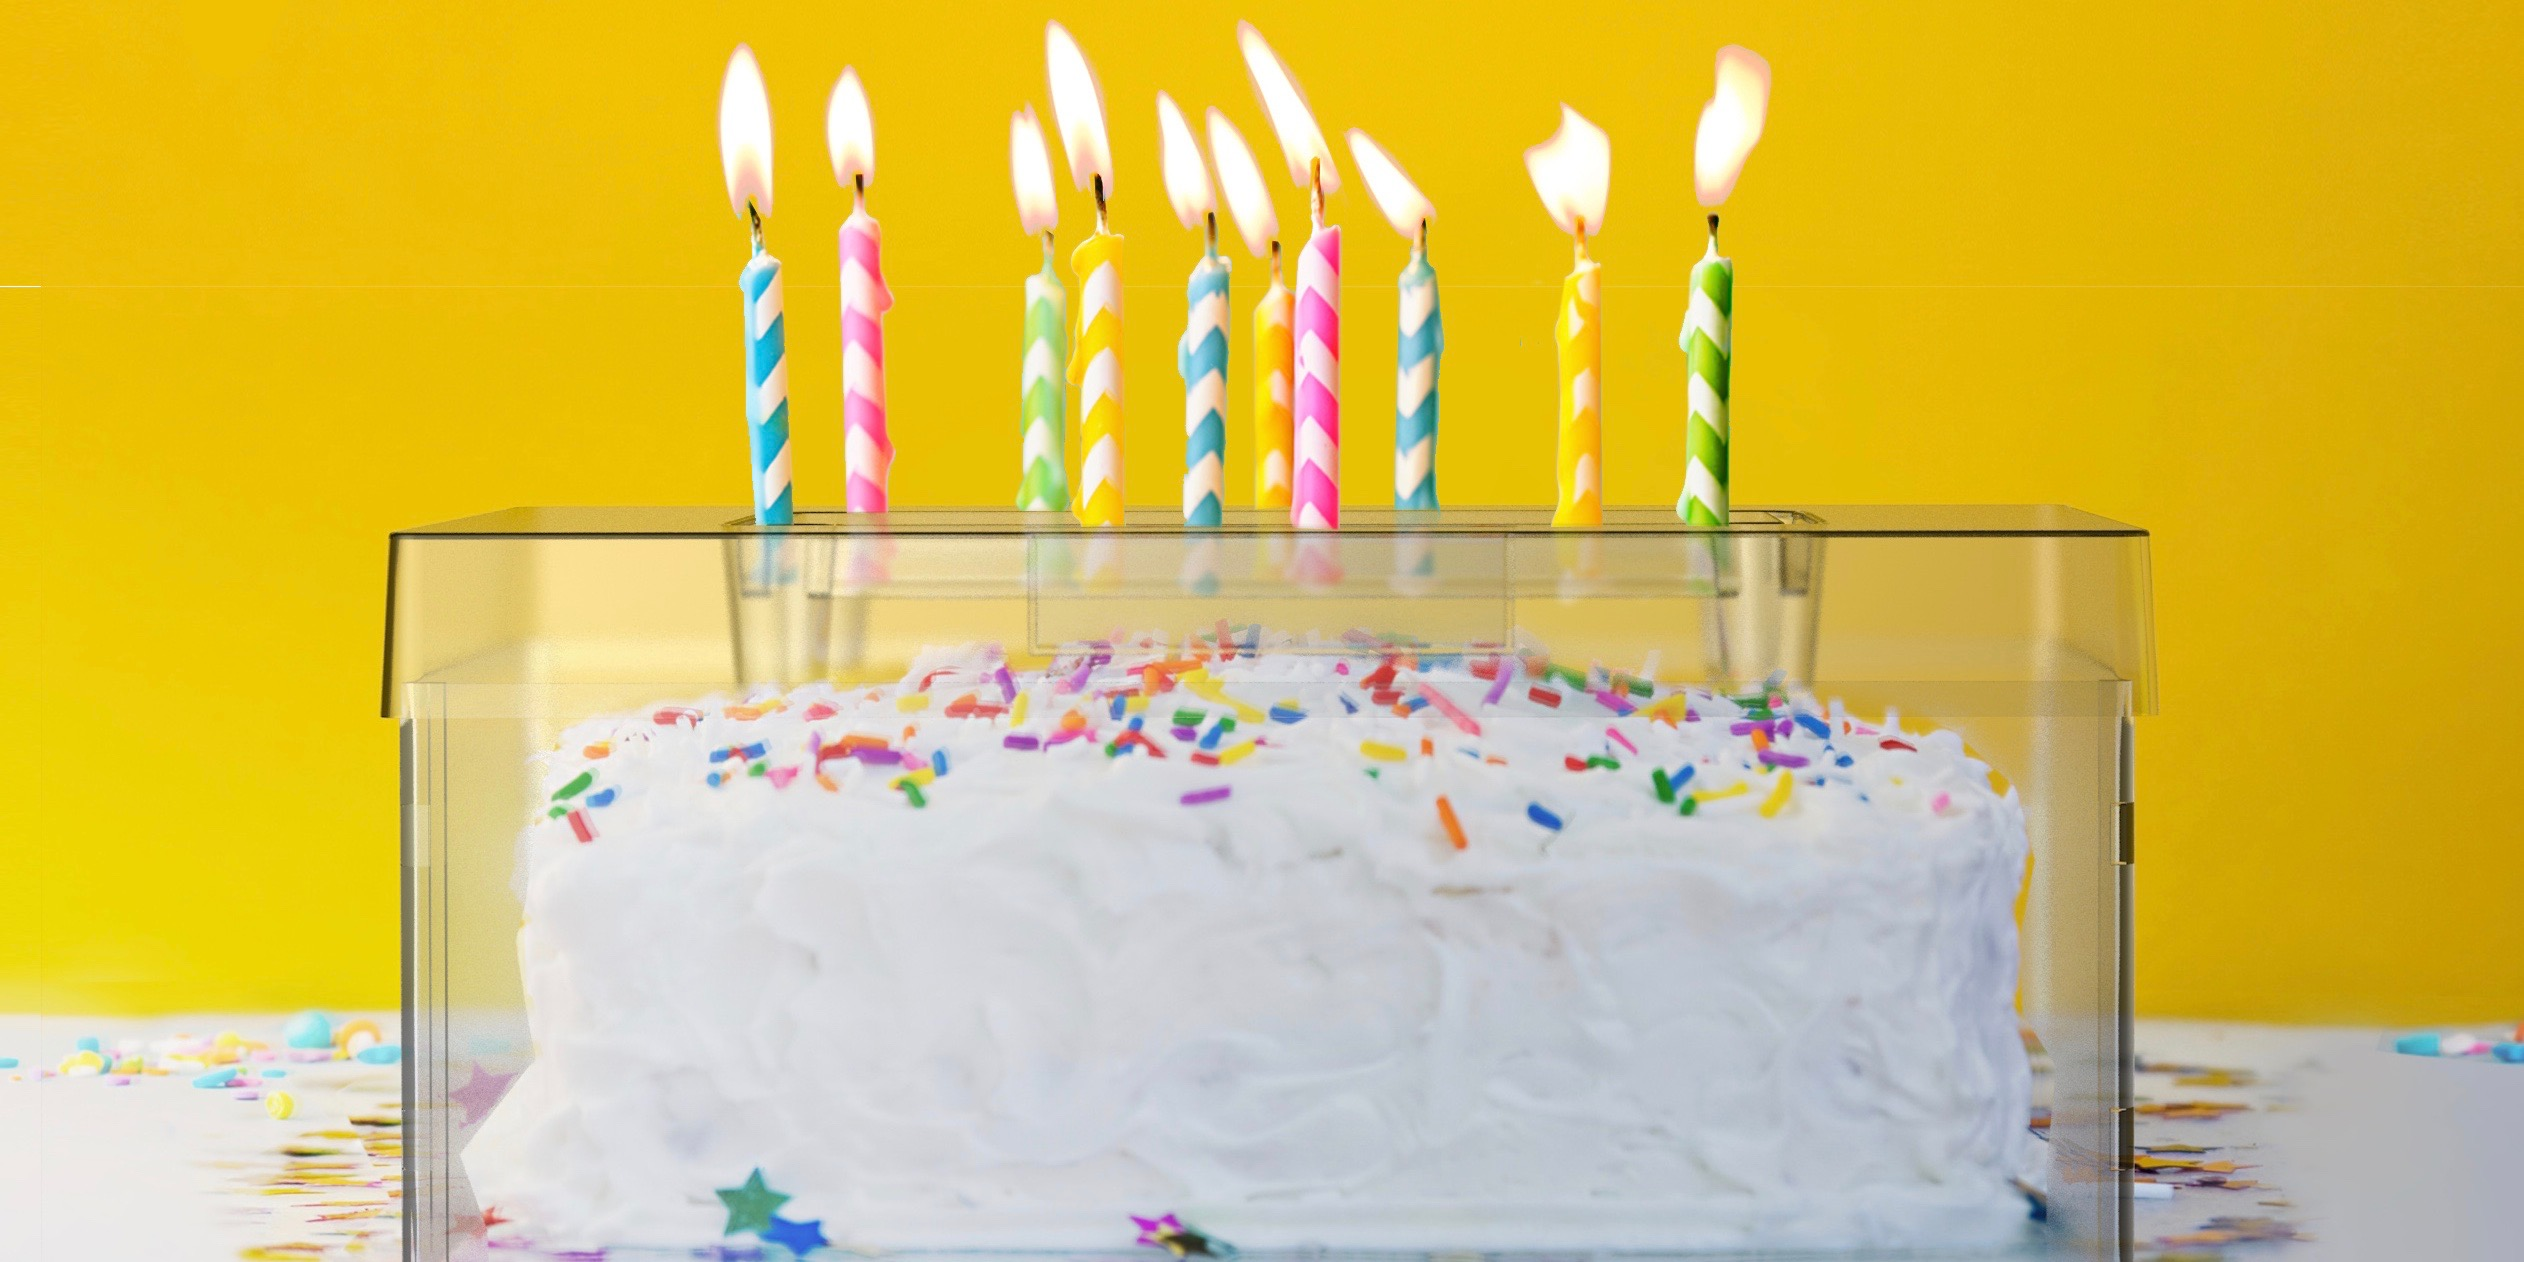 A Dentist Created A Cake Shield To Protect Birthday Guests From Germs